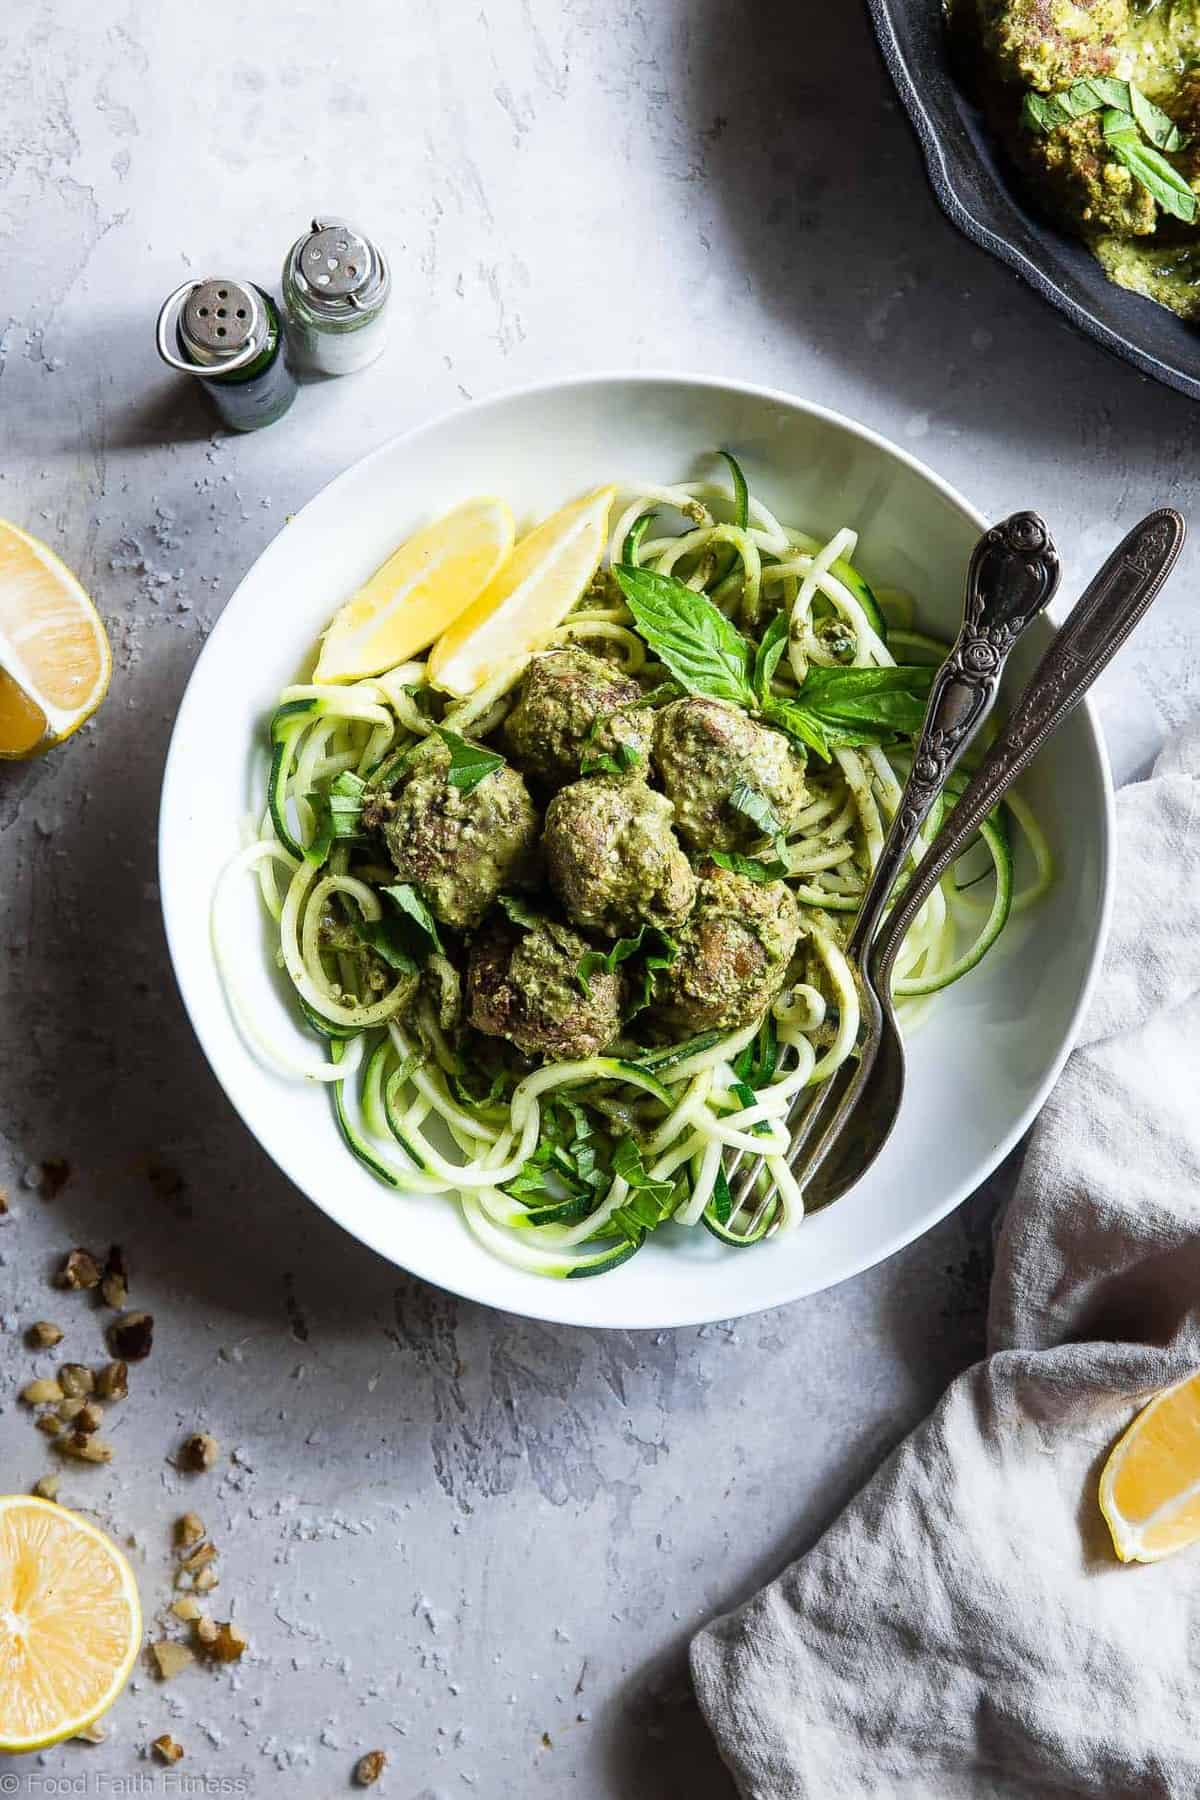 Gluten Free Whole30 Paleo Turkey Meatballs with Pesto Cream Sauce - These healthy whole 30 meatballs are simmered in a coconut milk basil pesto cream sauce for an easy, weeknight meal that is keto and paleo friendly and so tasty! | #Foodfaithfitness |